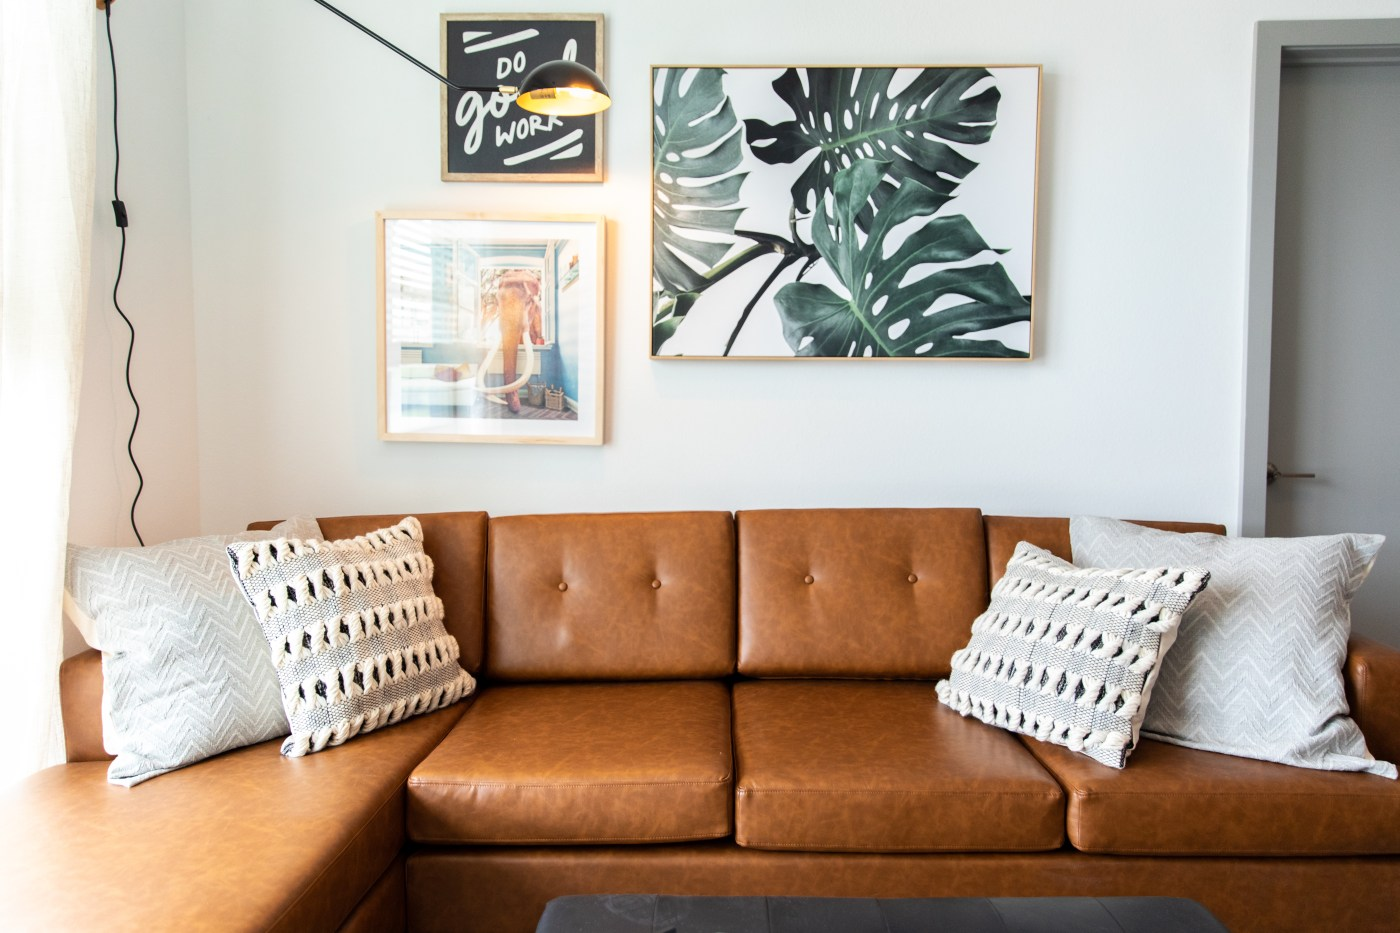 Lumen Above Railroad Park couch in living room